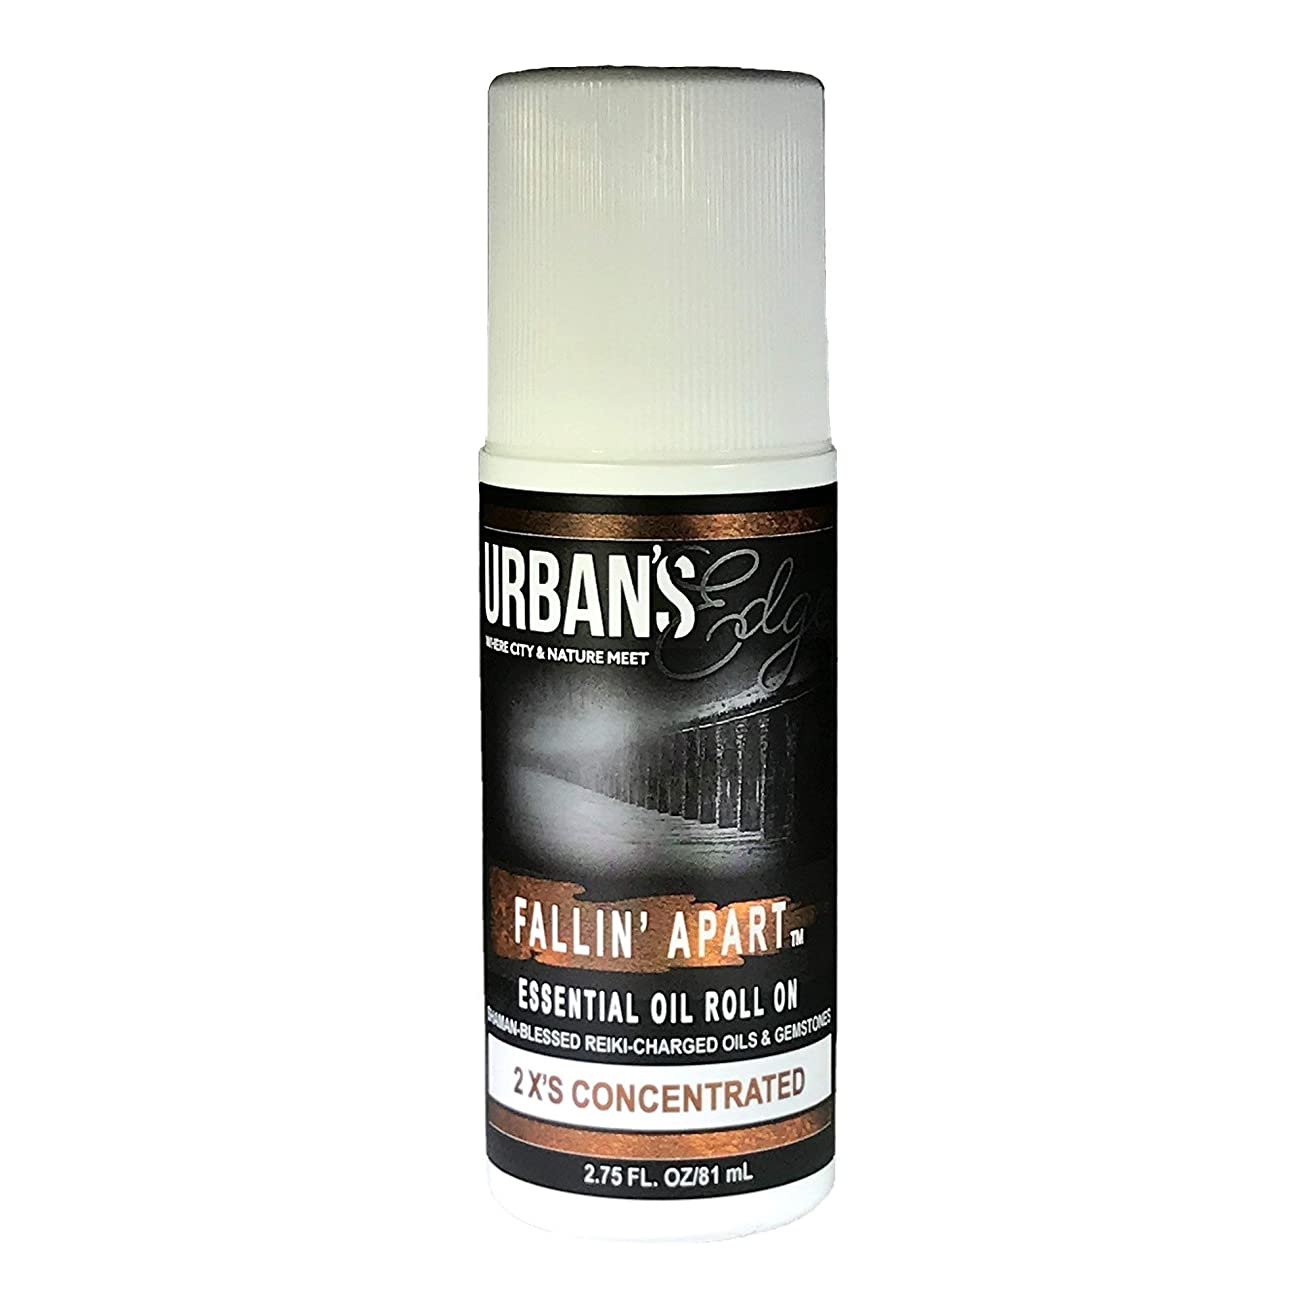 Fallin' Apart Essential Oil Roll-On (Natural) Topical Formula Delivers Cool and Warming Comfort for Joints & Muscles